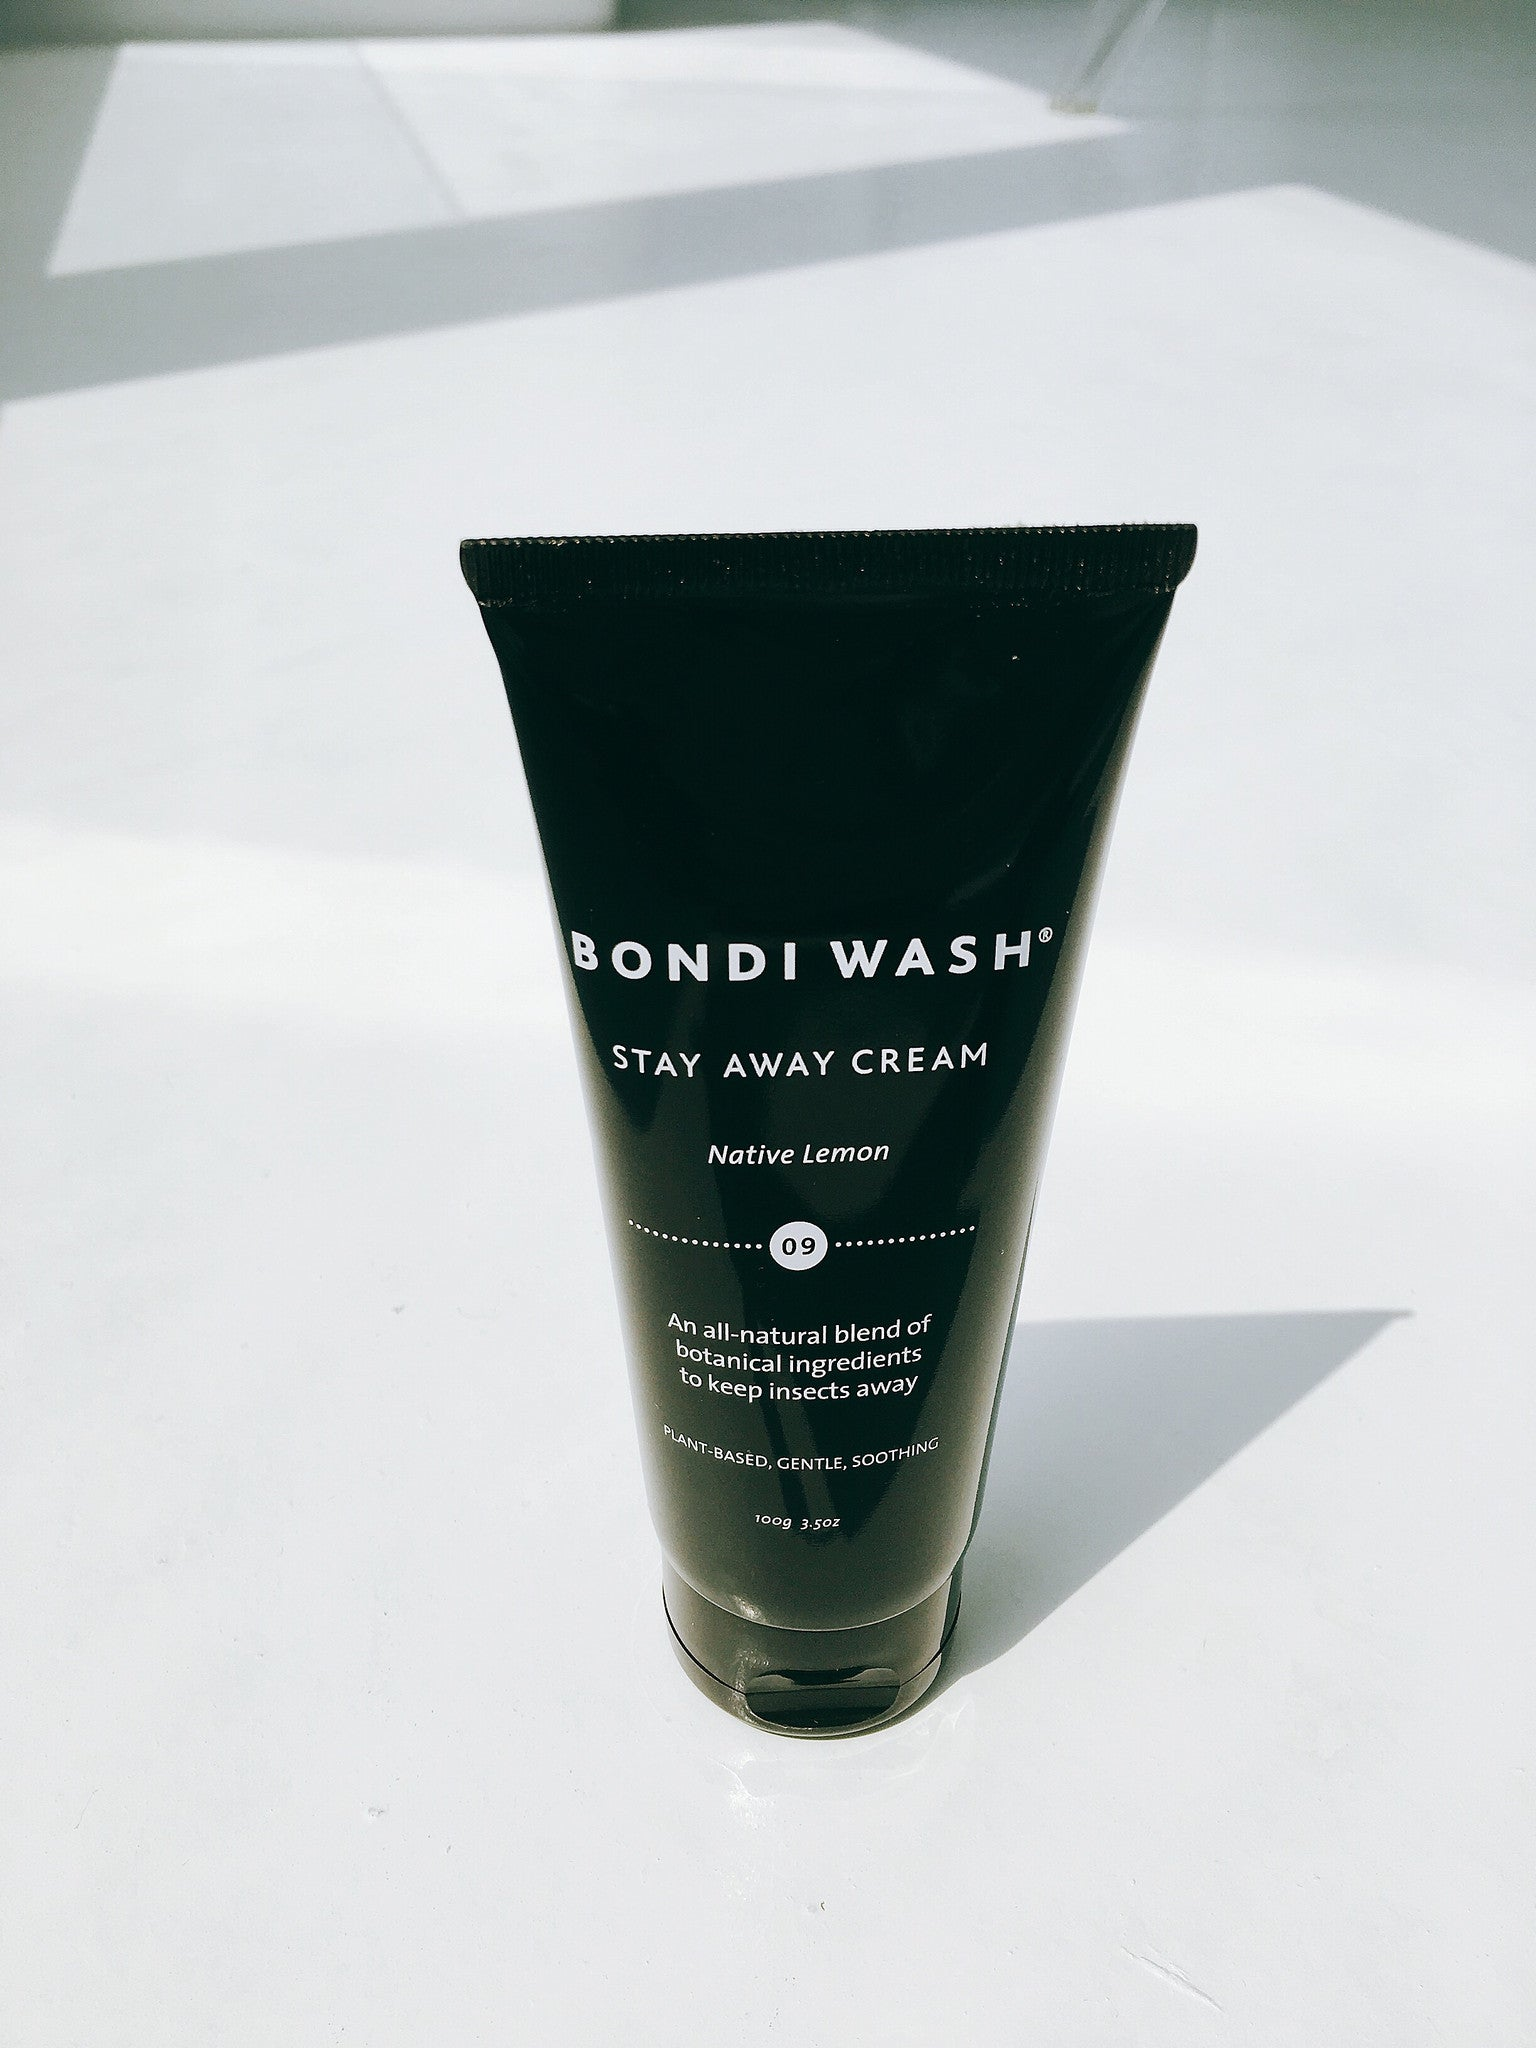 Bondi Wash - Stay Away Cream(Native Lemon Insect Repellent) 100g 澳洲檸檬驅蚊止痕膏